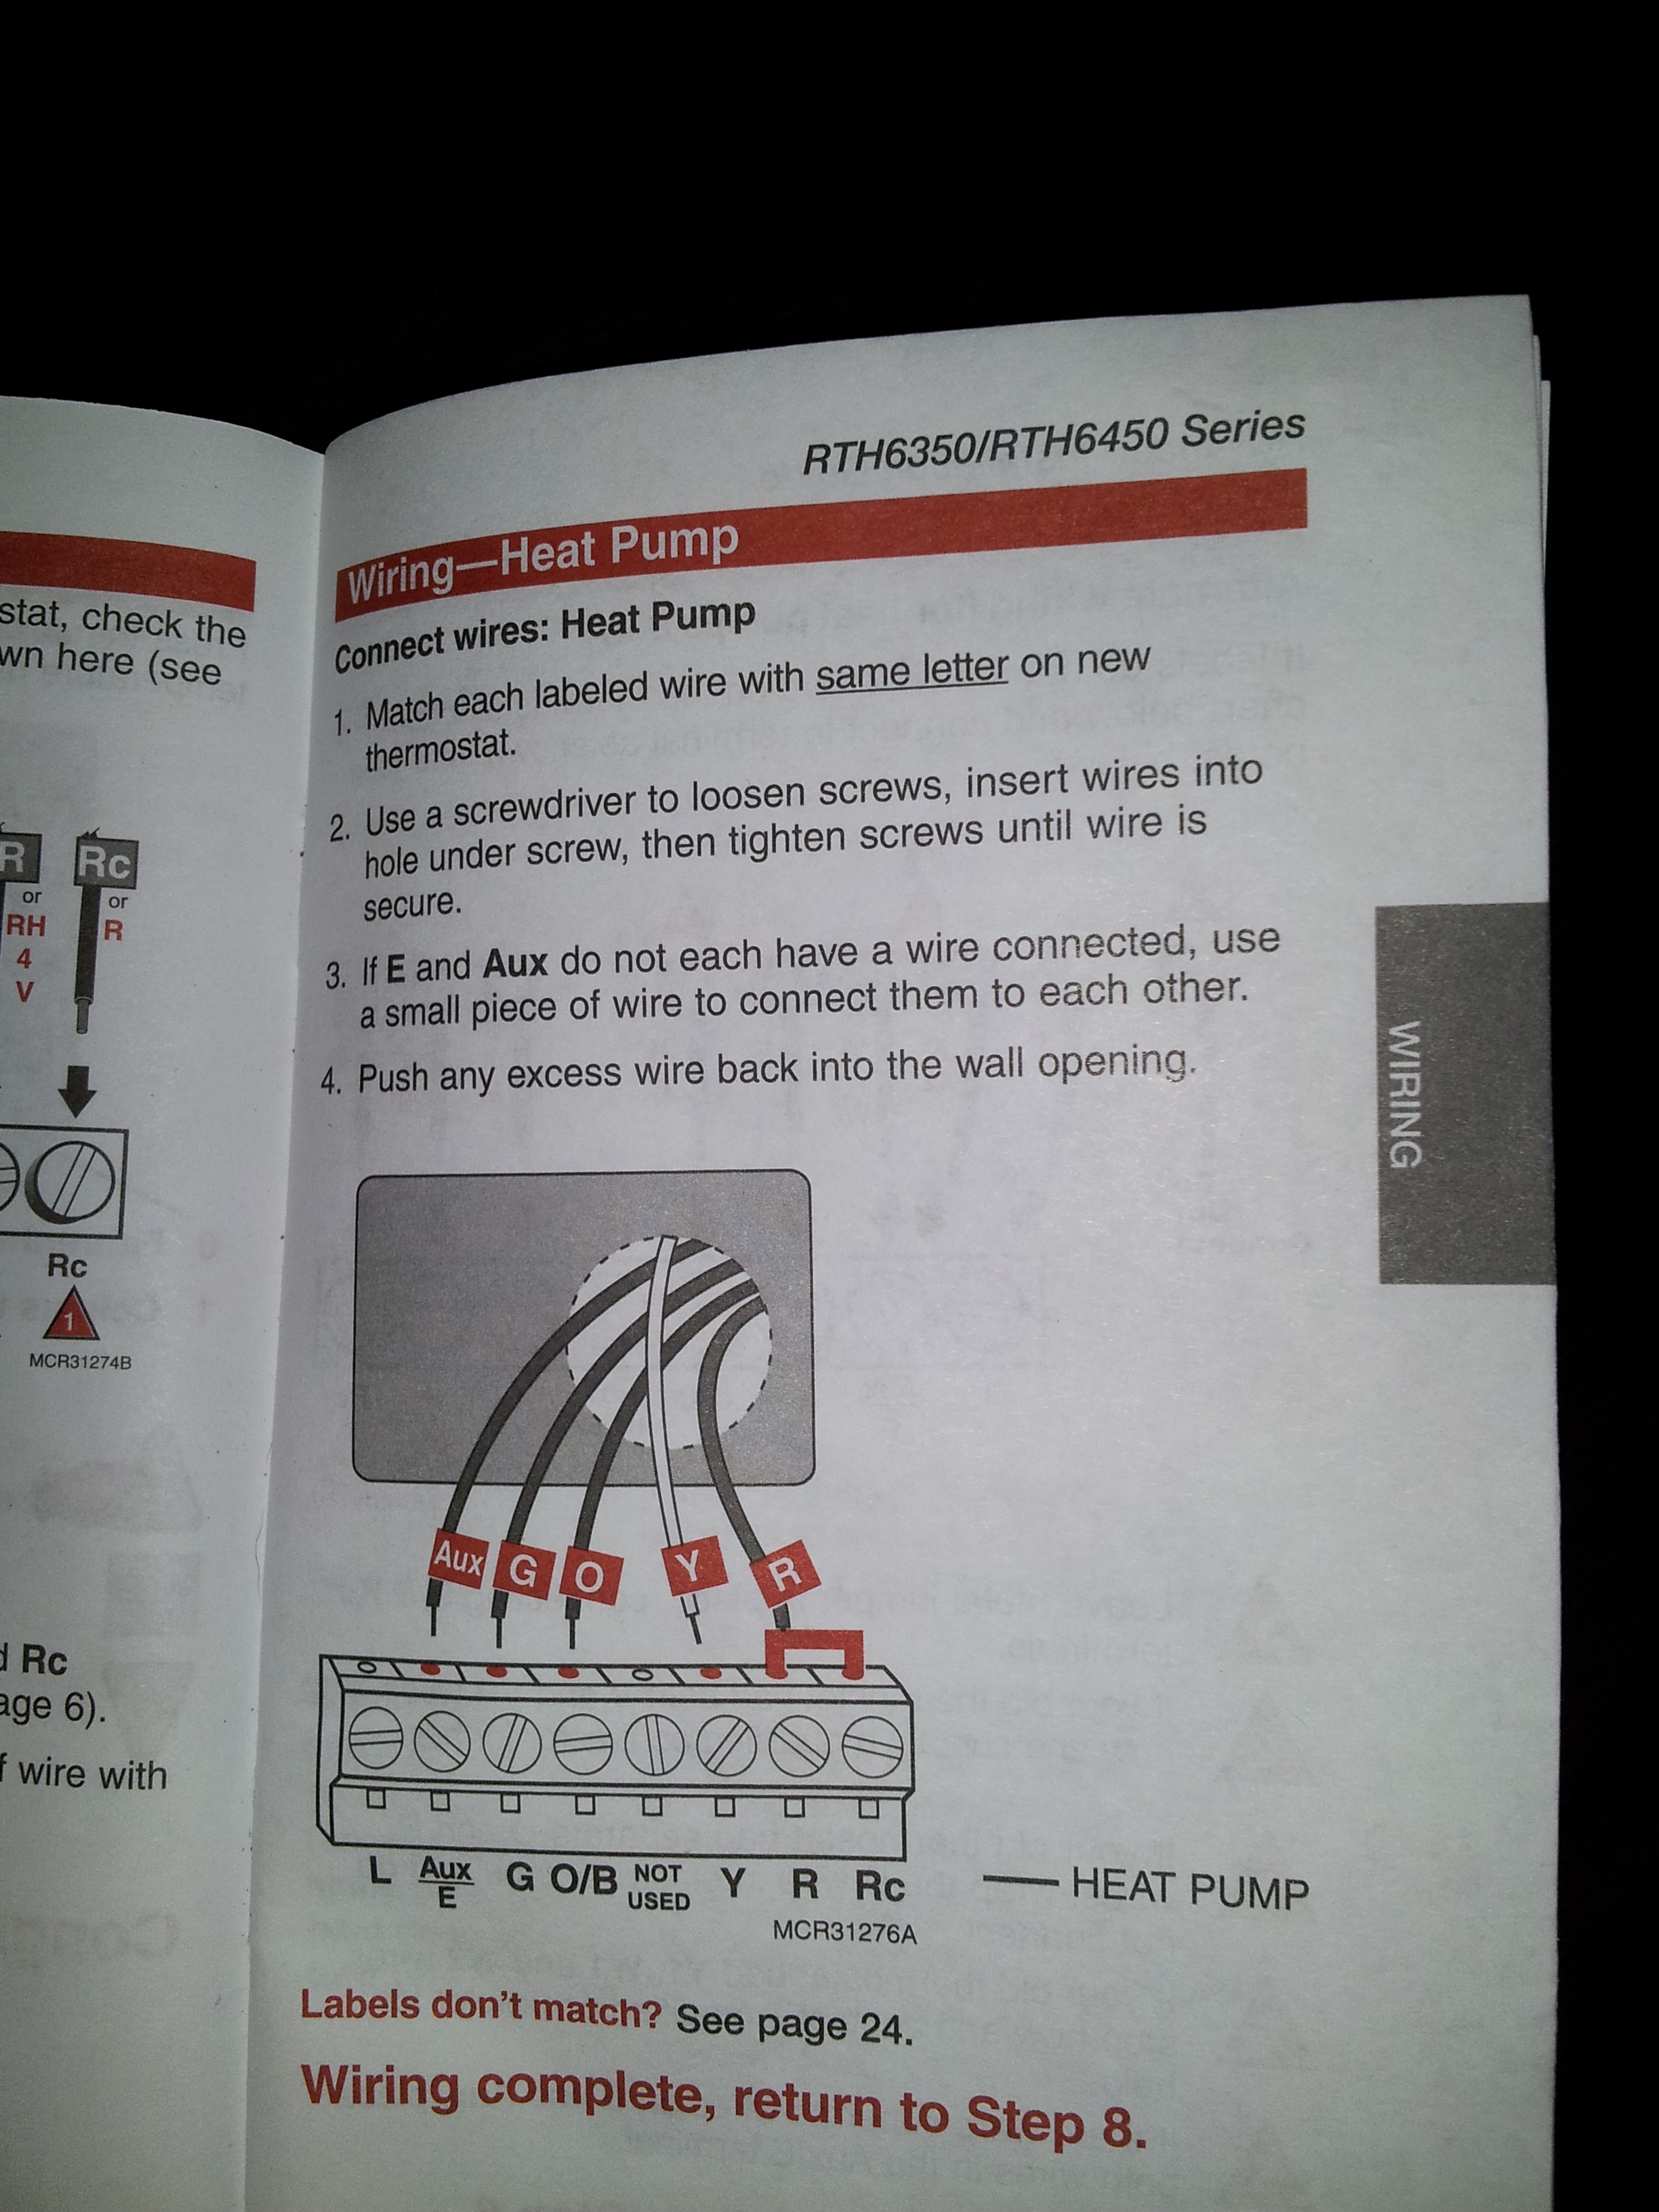 2014 01 20_033815_20140119_203109 i'm installing a honeywell rth6350 the thermostat i am replacing totaline thermostat wiring diagram at crackthecode.co